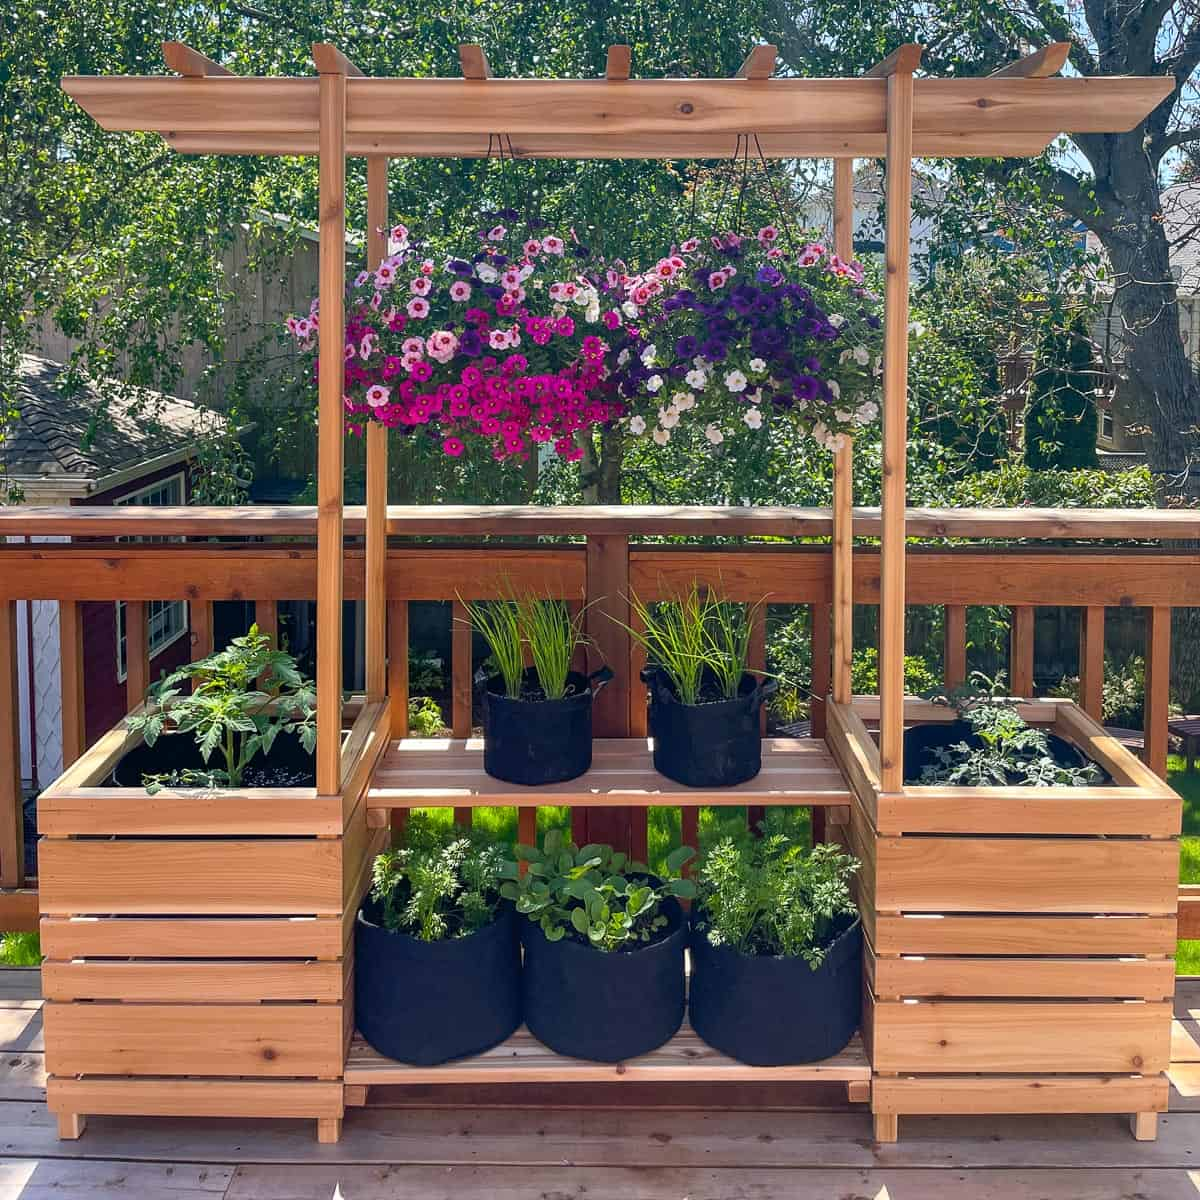 DIY outdoor plant stand with arbor, planter boxes and hanging baskets